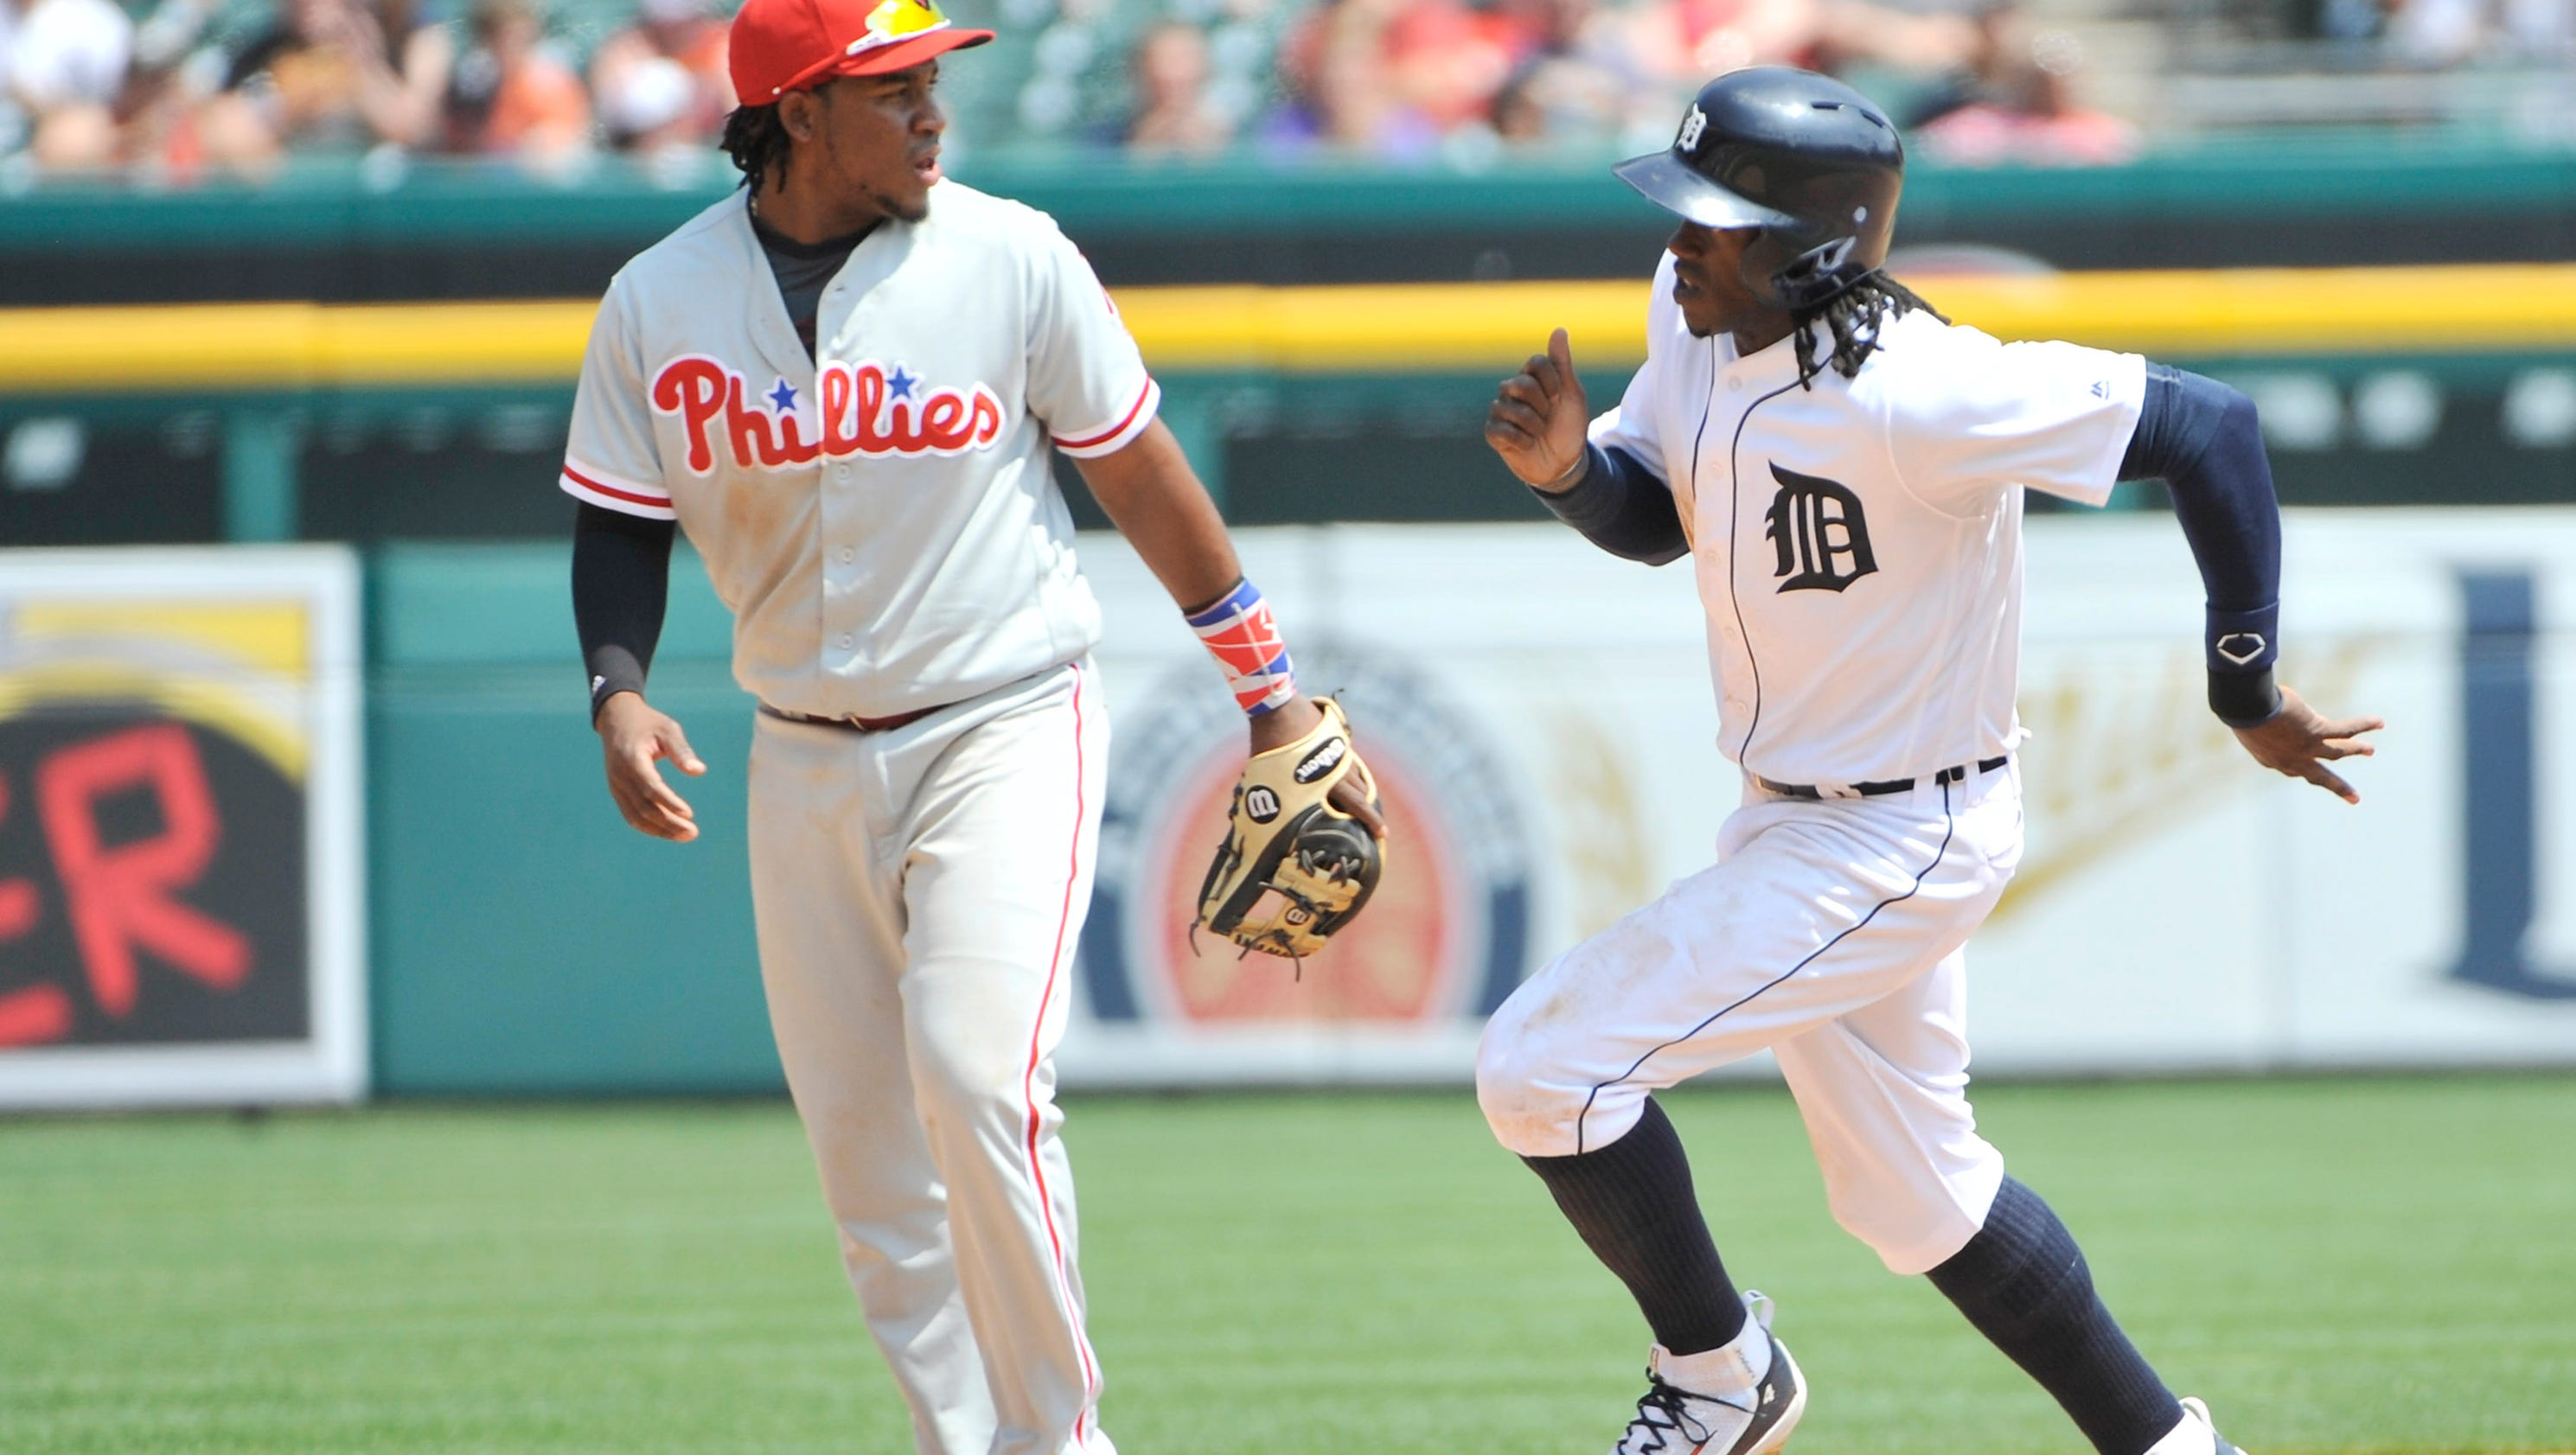 635997874978438120-2016-0525-rb-tigers-phillies579